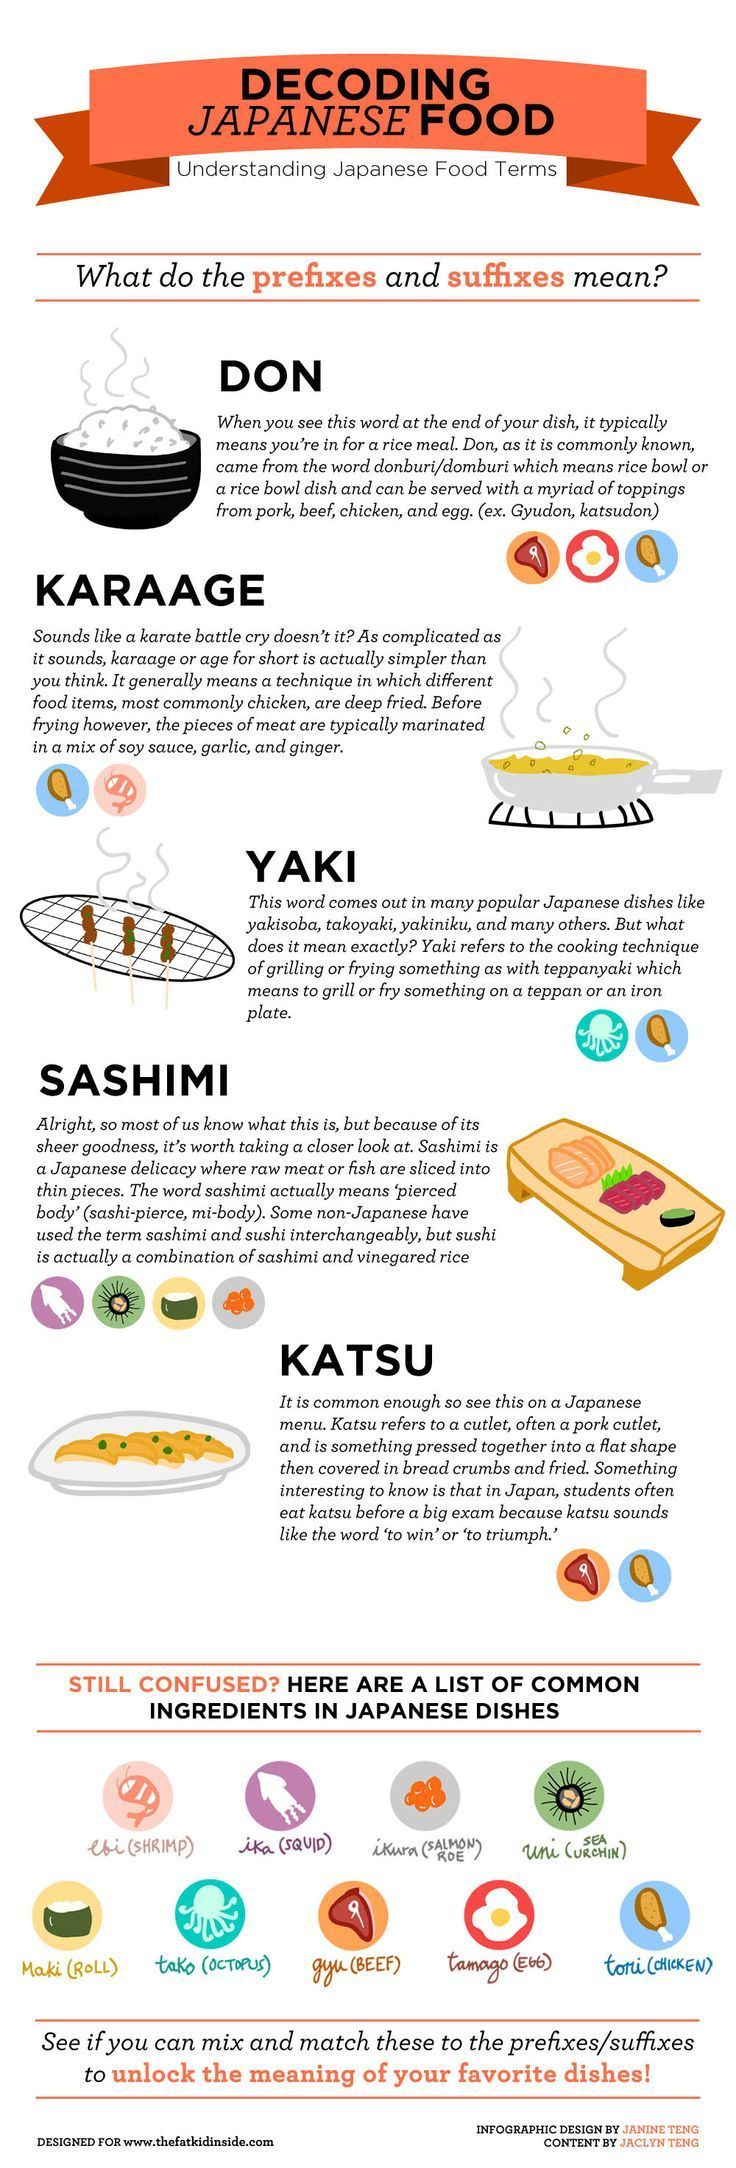 Know your Japanese food. A good general guideline about food names in Japan.